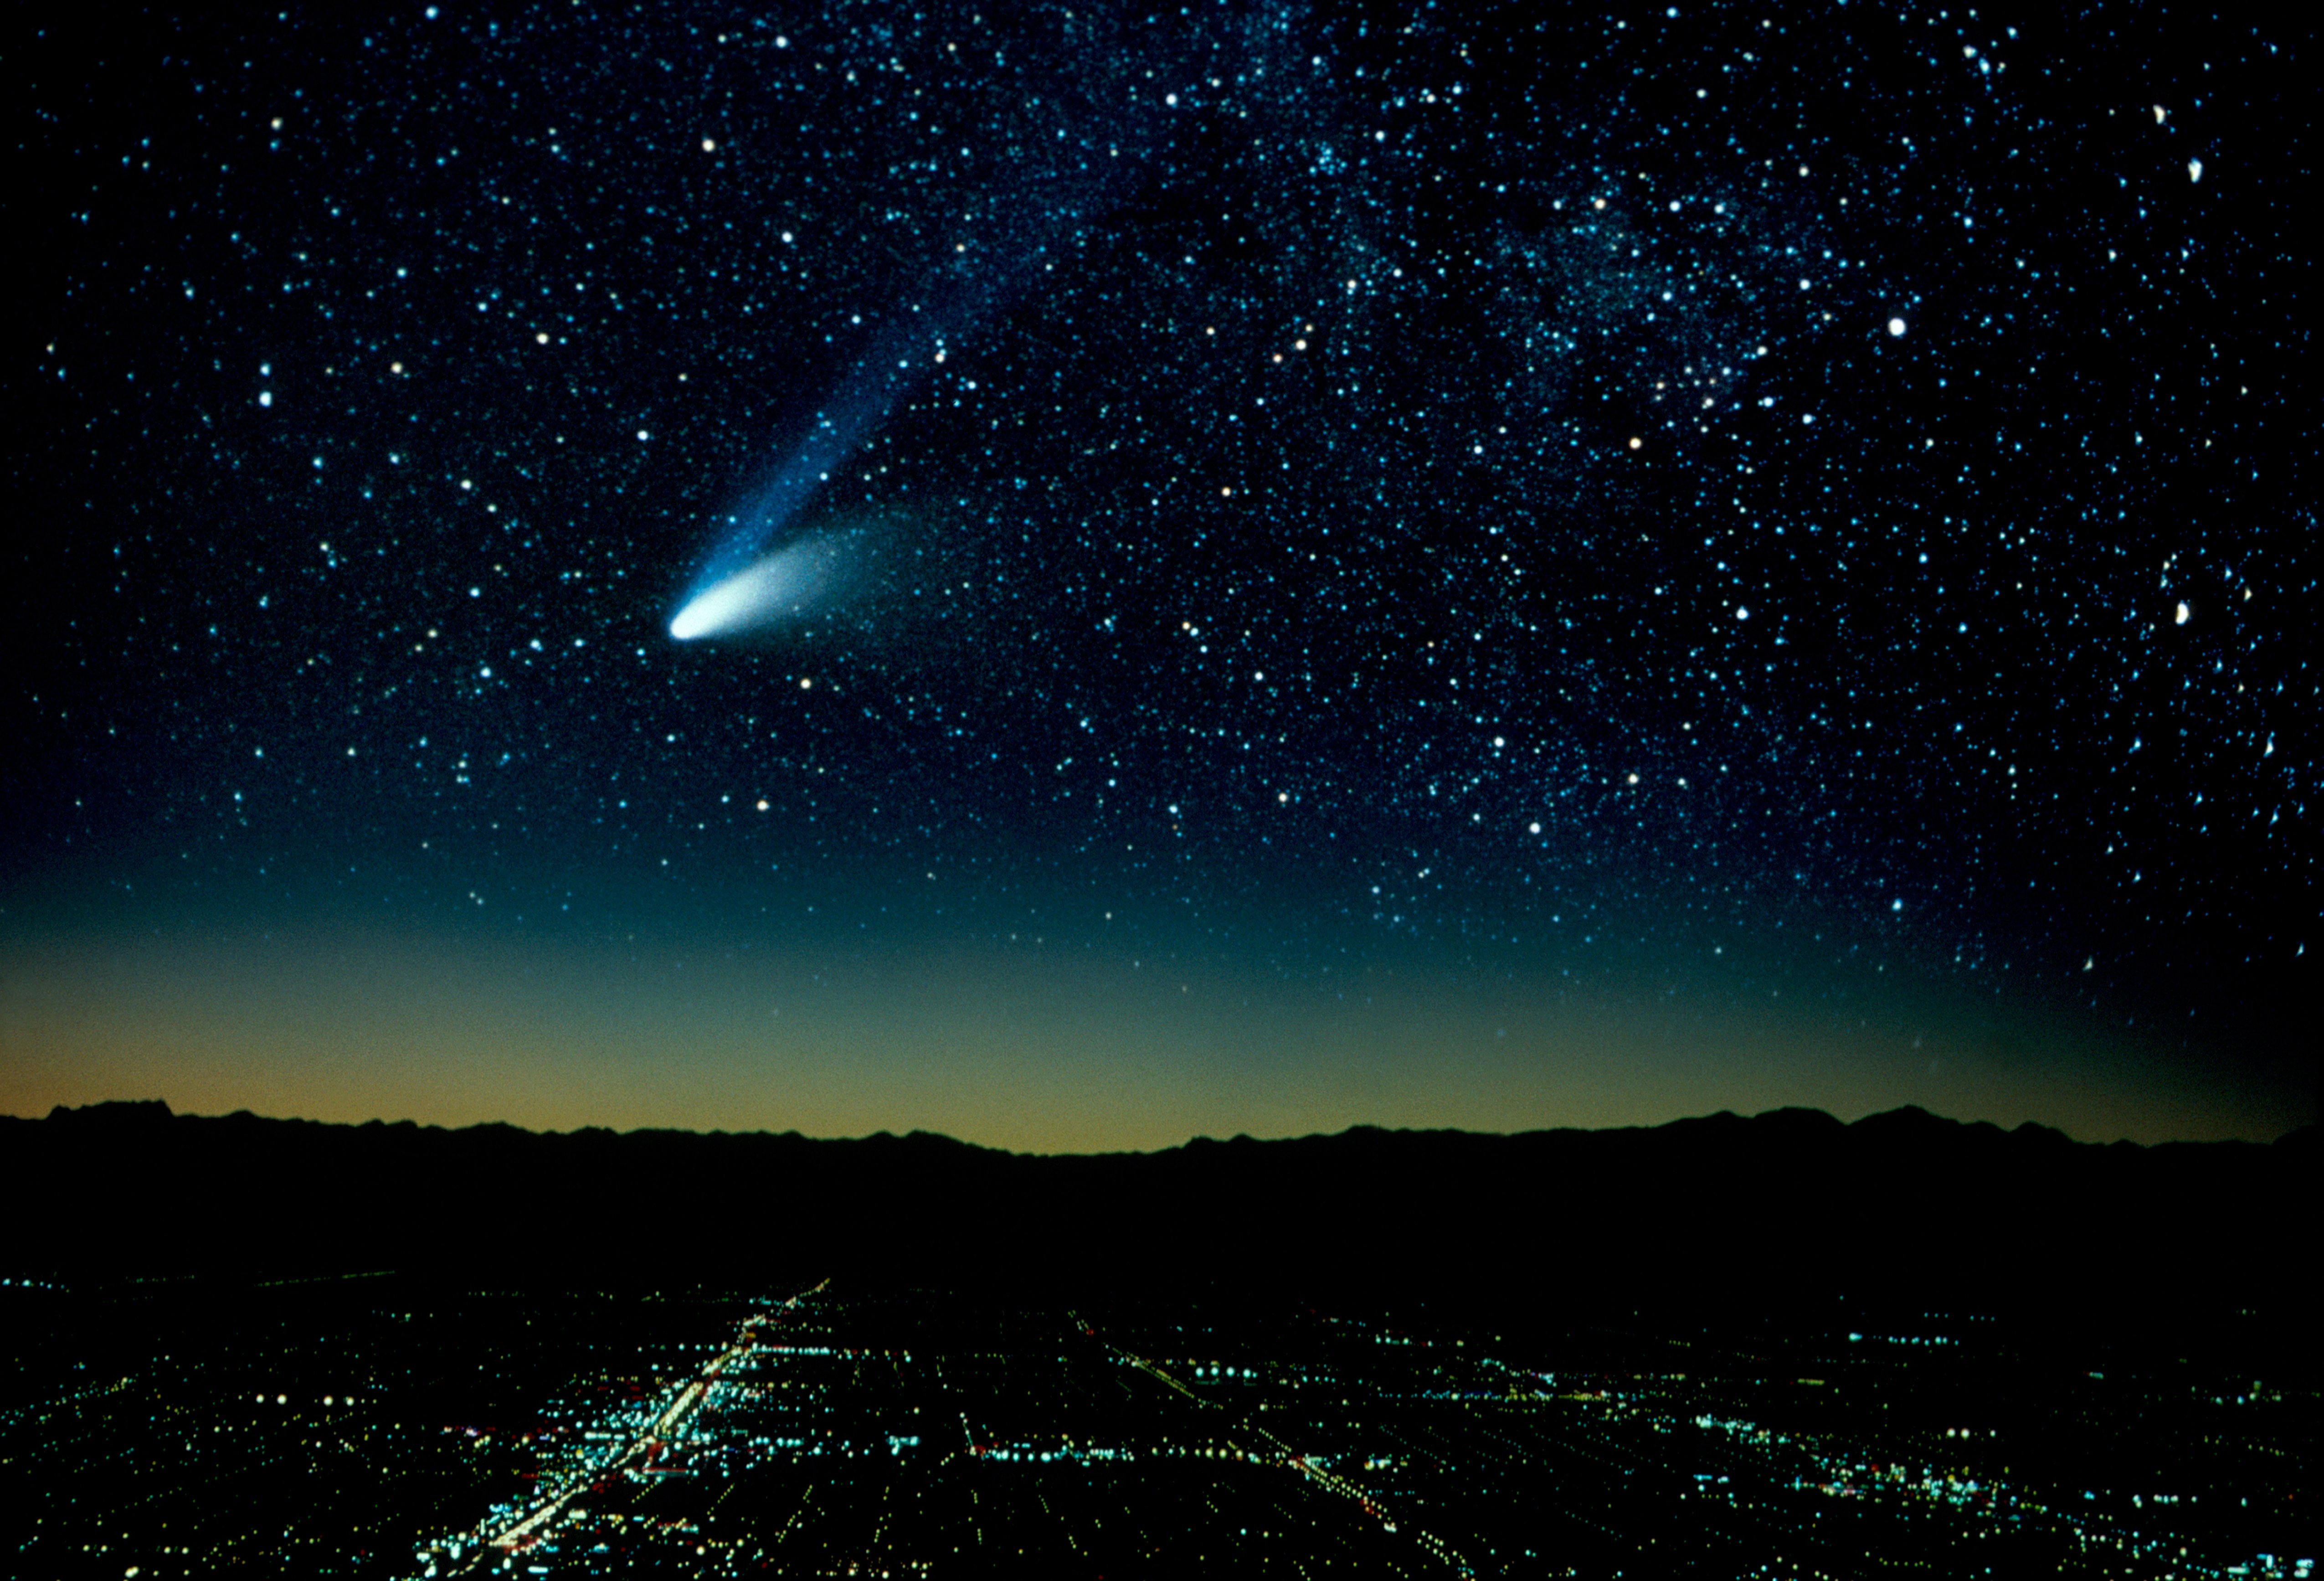 Hale-Bopp Comet And City At Night (Composite).